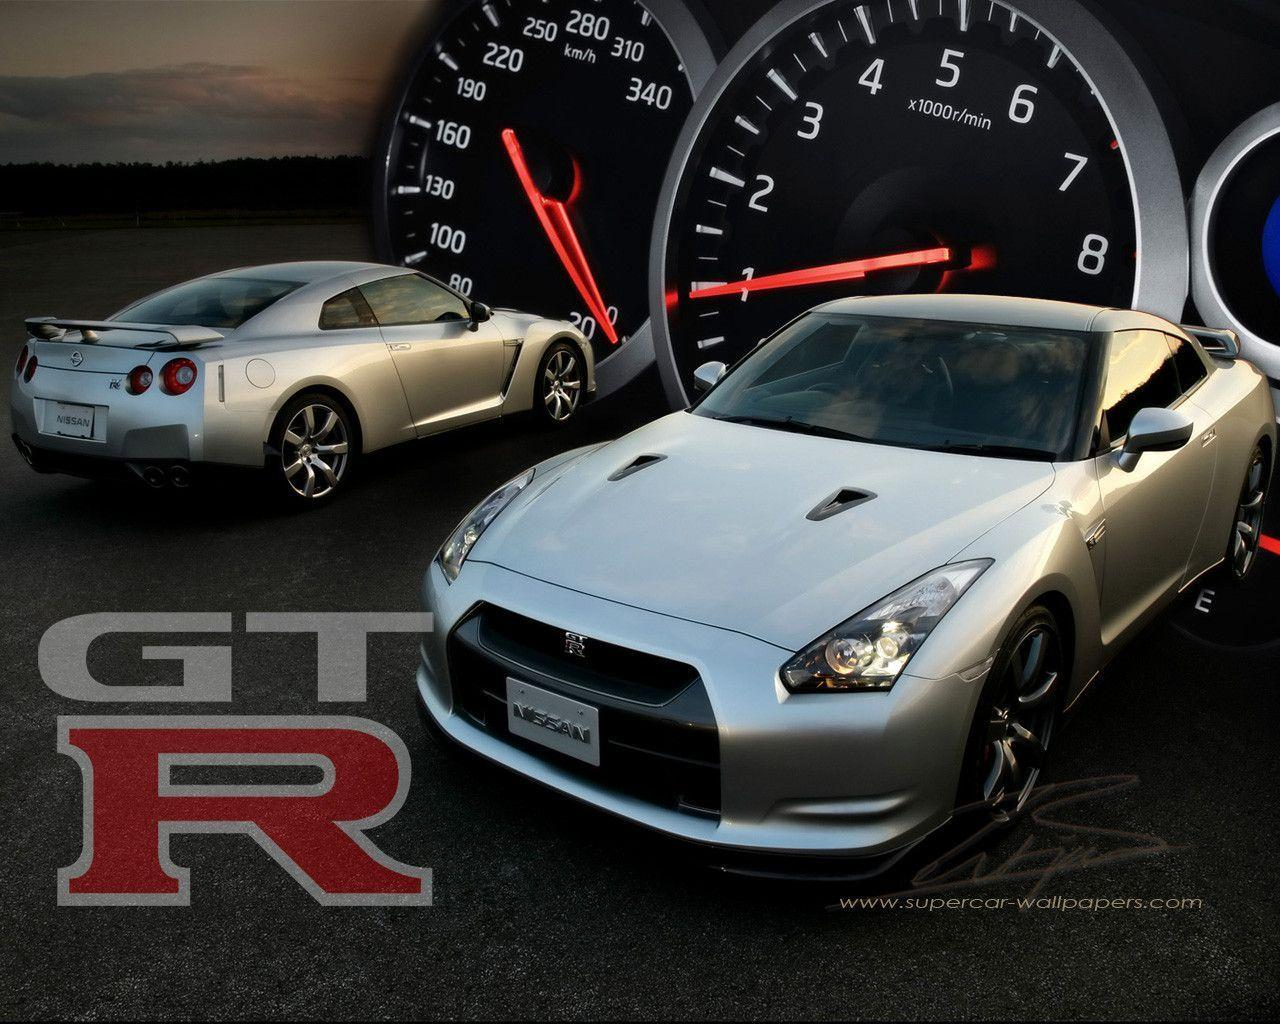 gtr 35 hd wallpaper iphone - photo #17